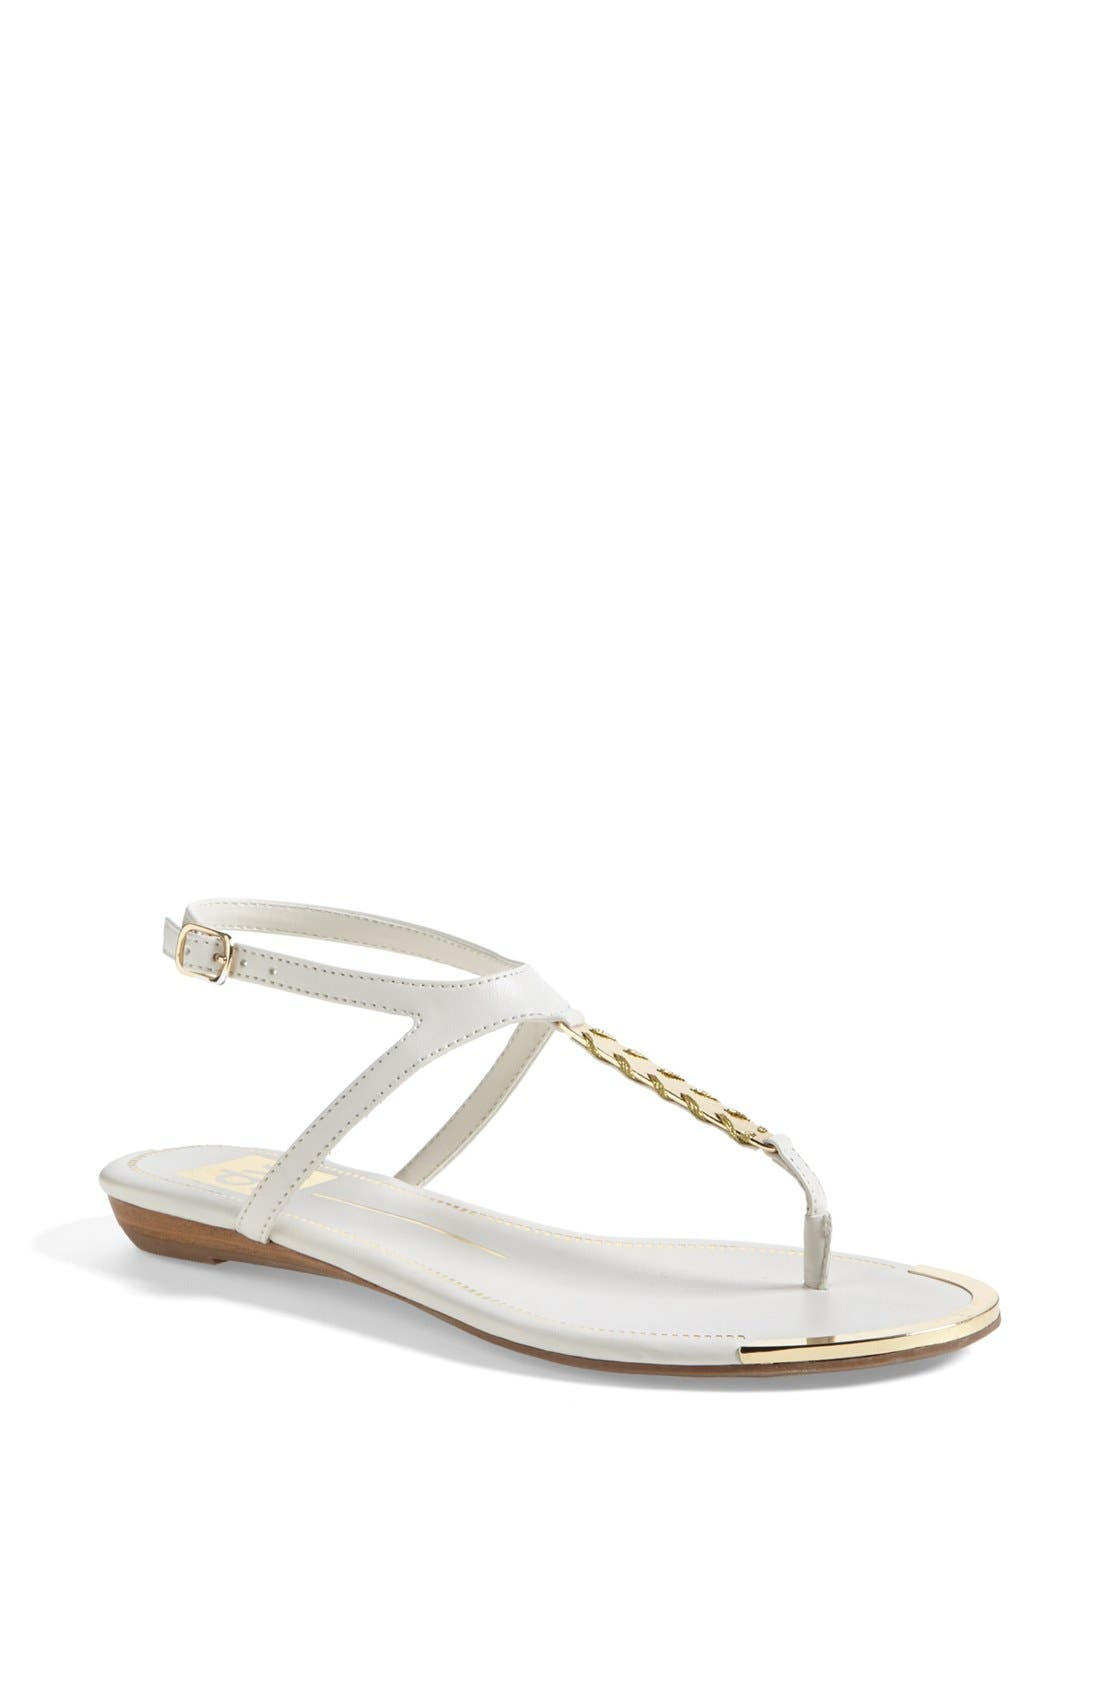 Main Image - DV by Dolce Vita 'Alvyn' Sandal (Nordstrom Exclusive)